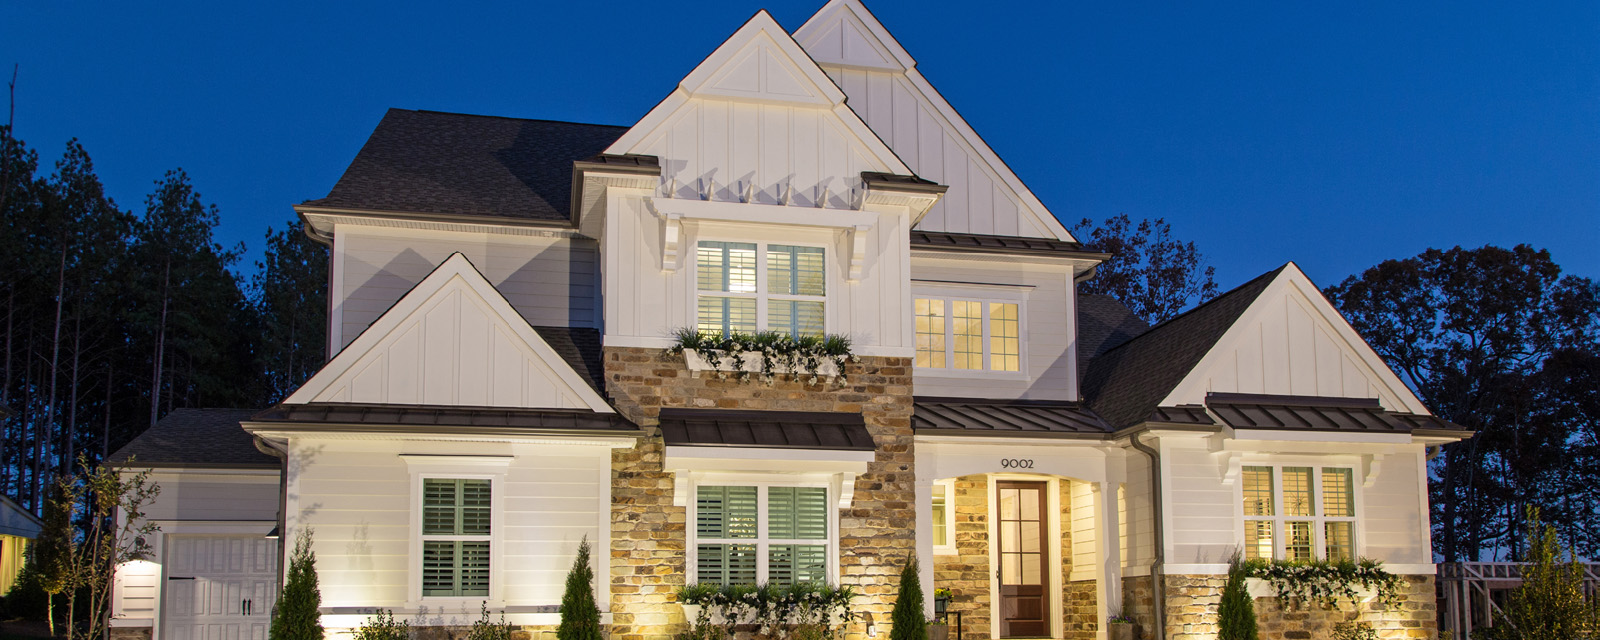 Buyers trust classica homes as the best in class custom home builder in the greater charlotte nc area live in a home that takes your breath away